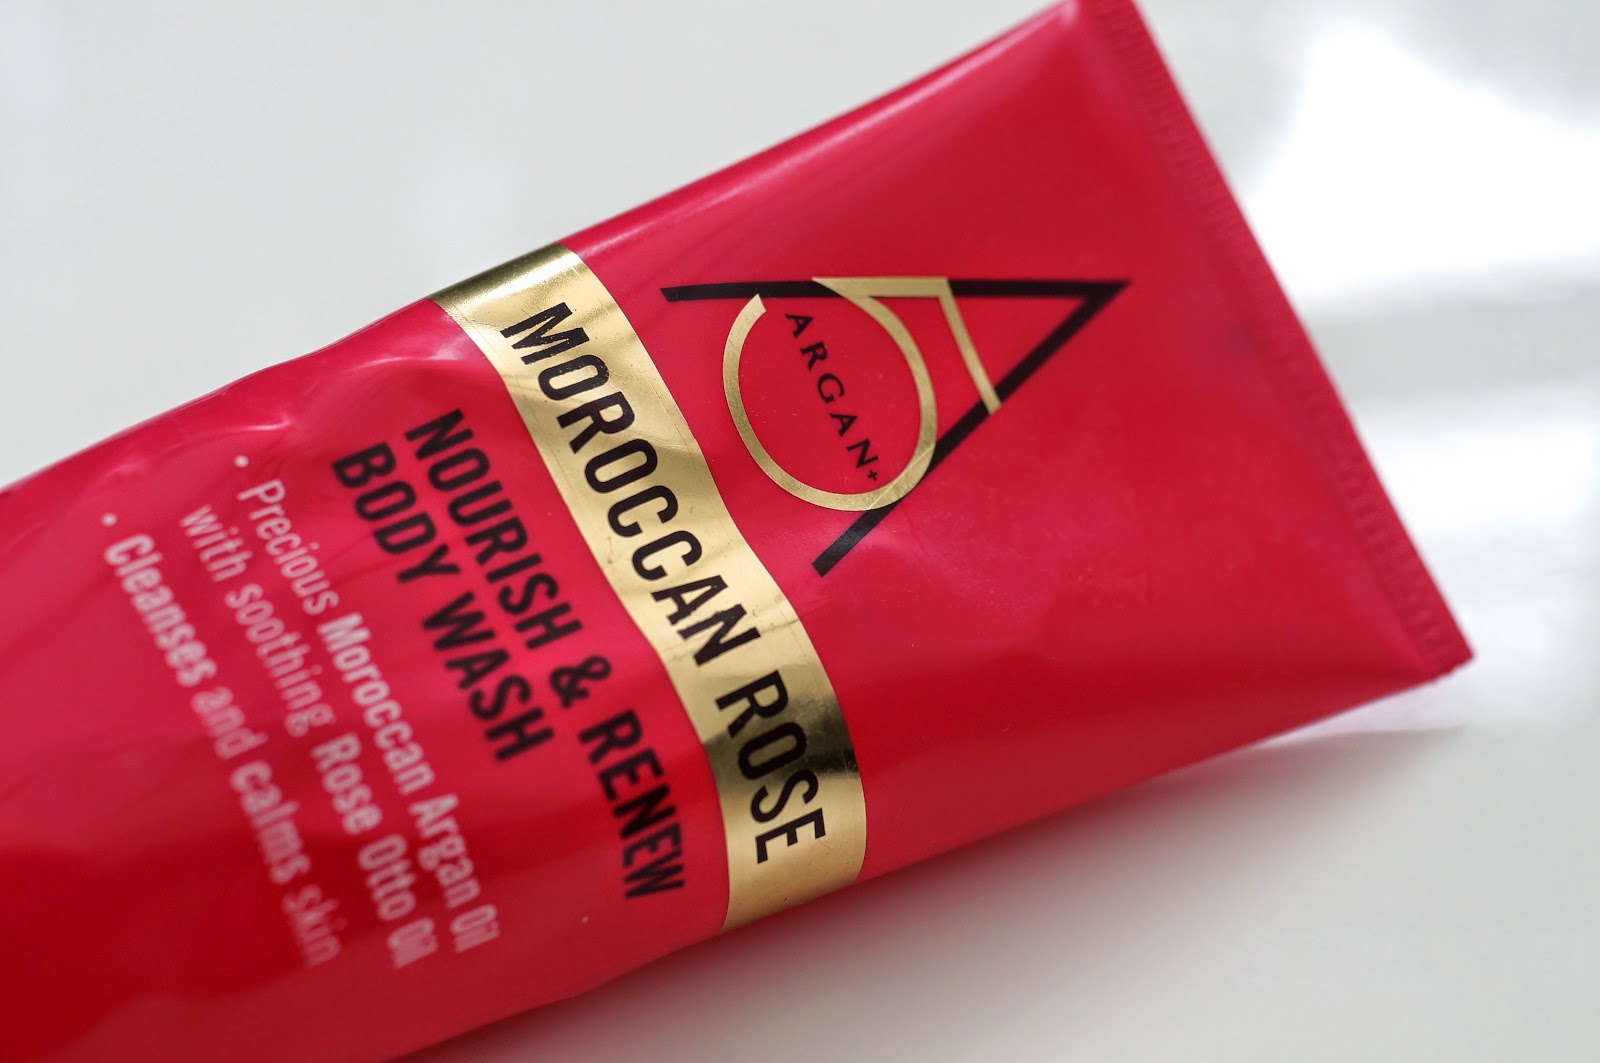 argan 5 morroccan rose body wash